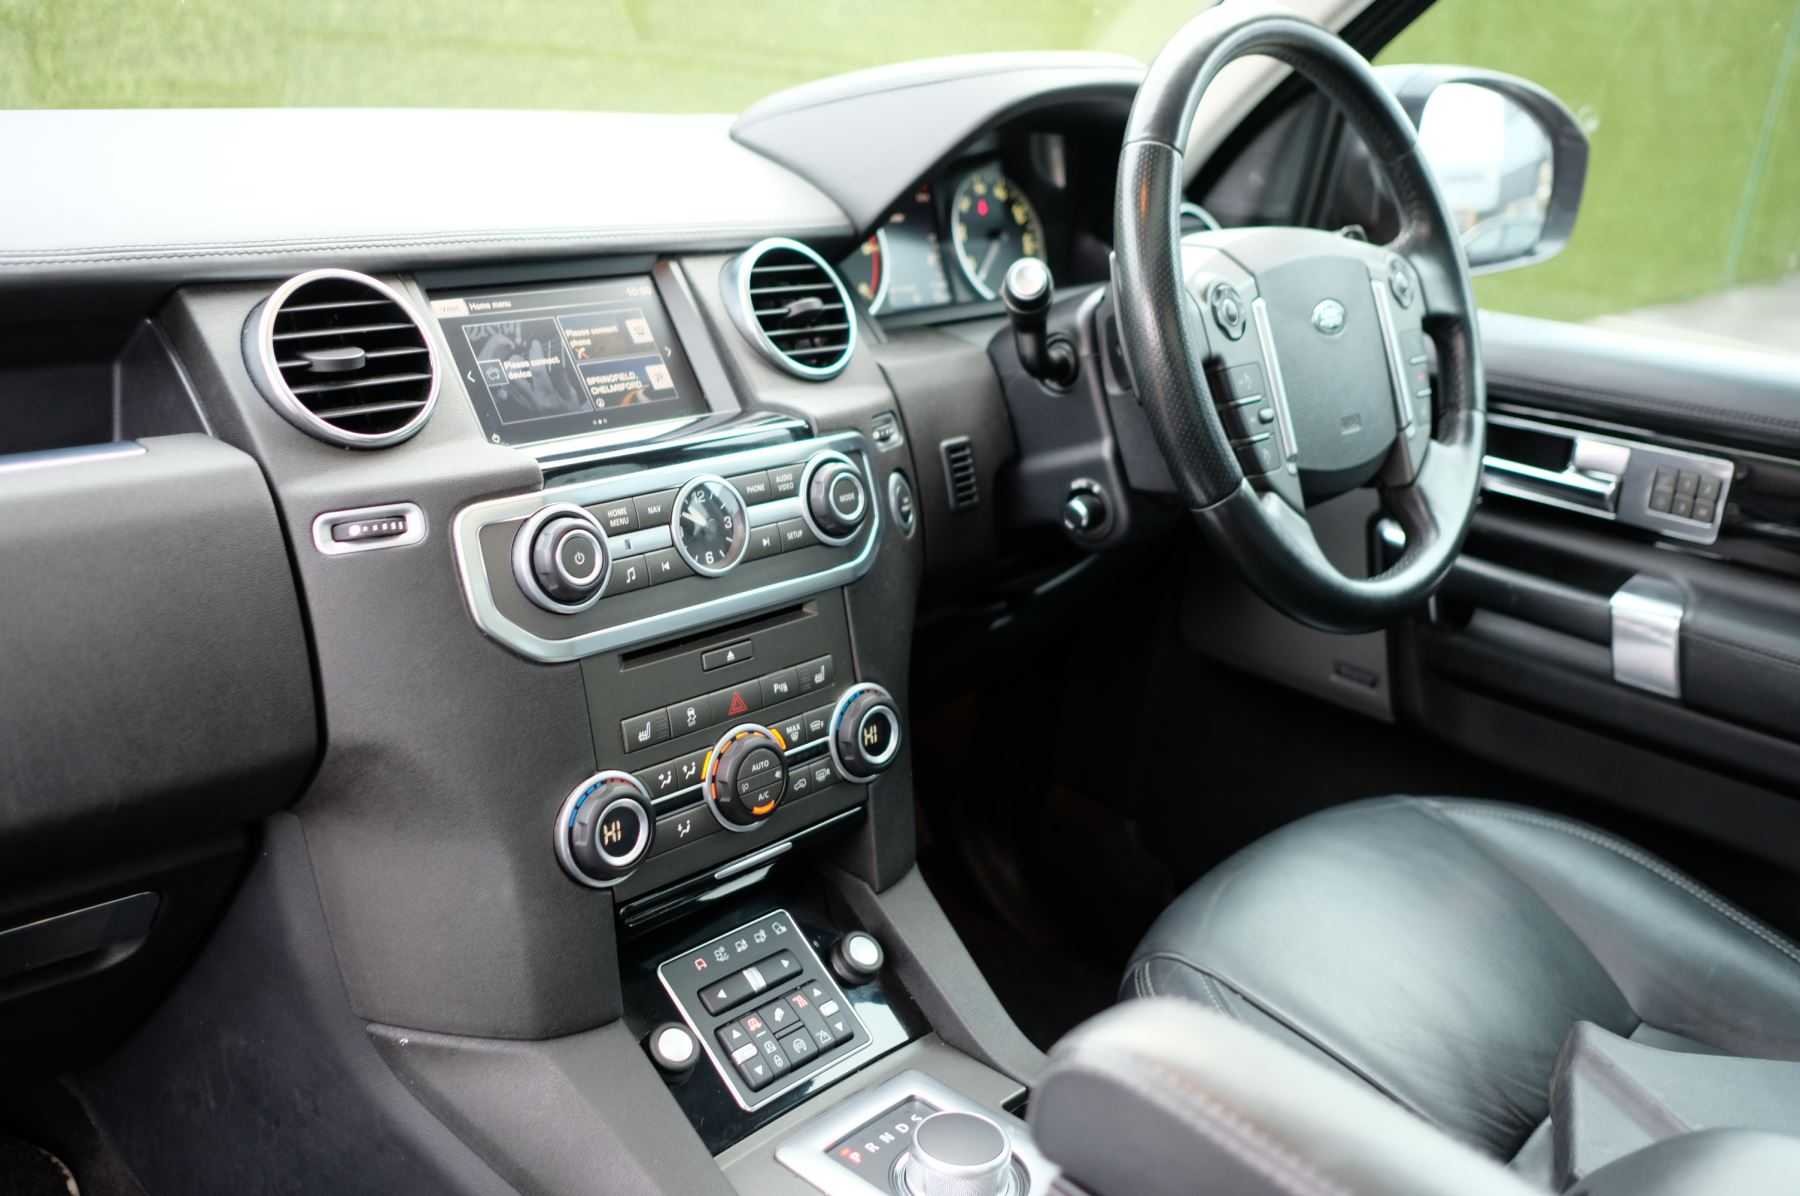 Land Rover Discovery 3.0 SDV6 HSE Luxury 5dr image 21